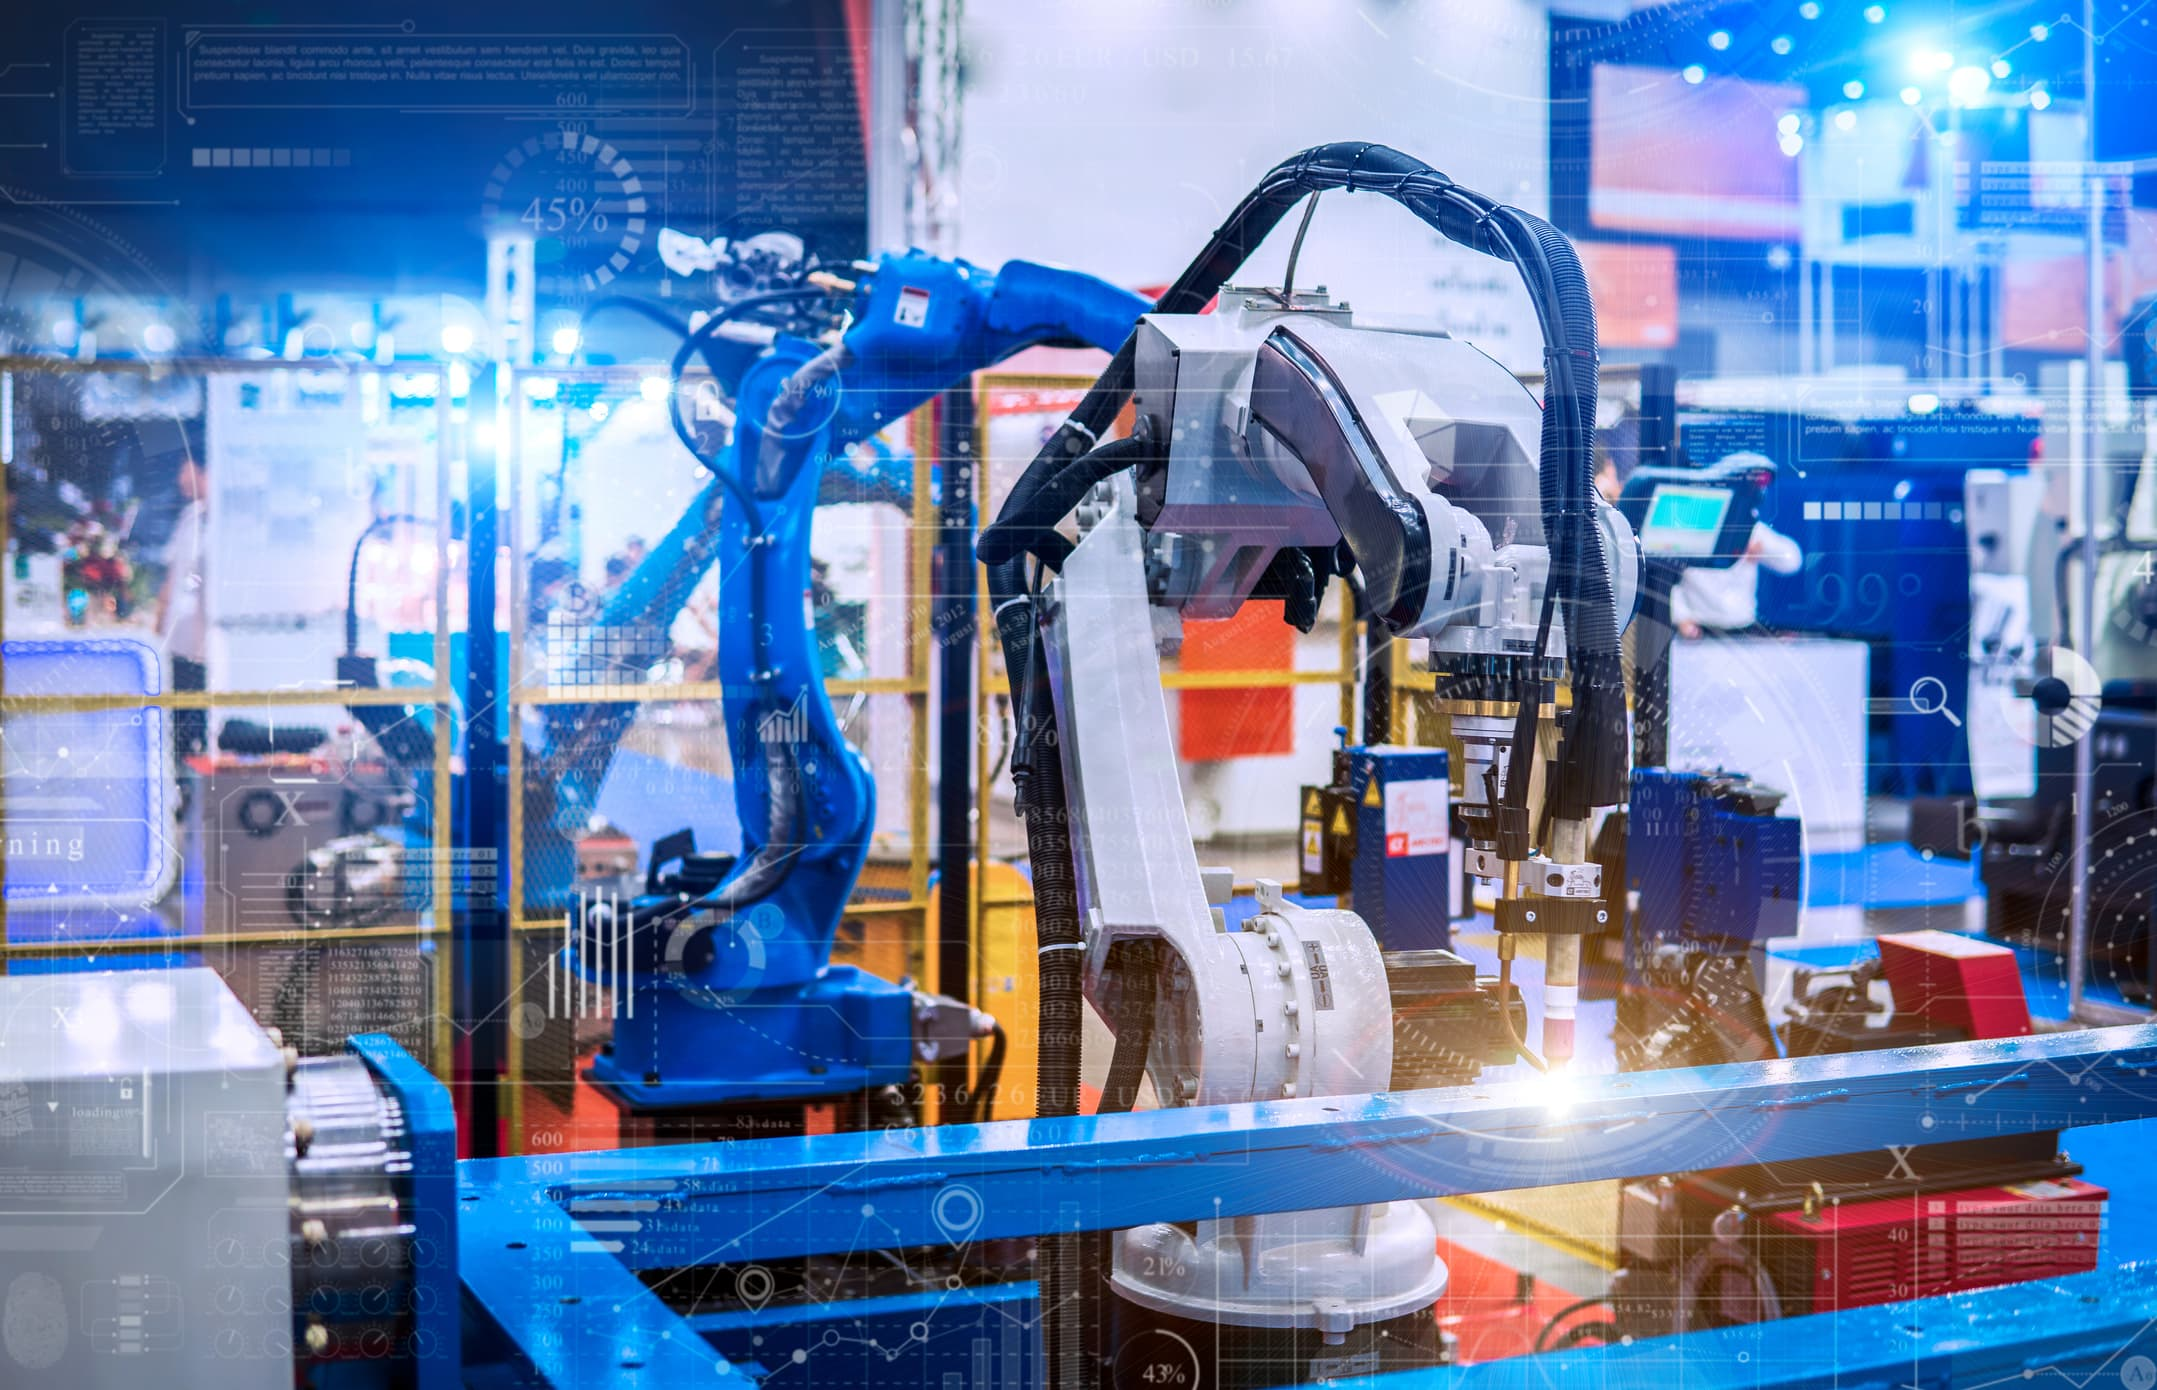 Smart factories could contribute as much as $2.2 trillion to the global economy, report says